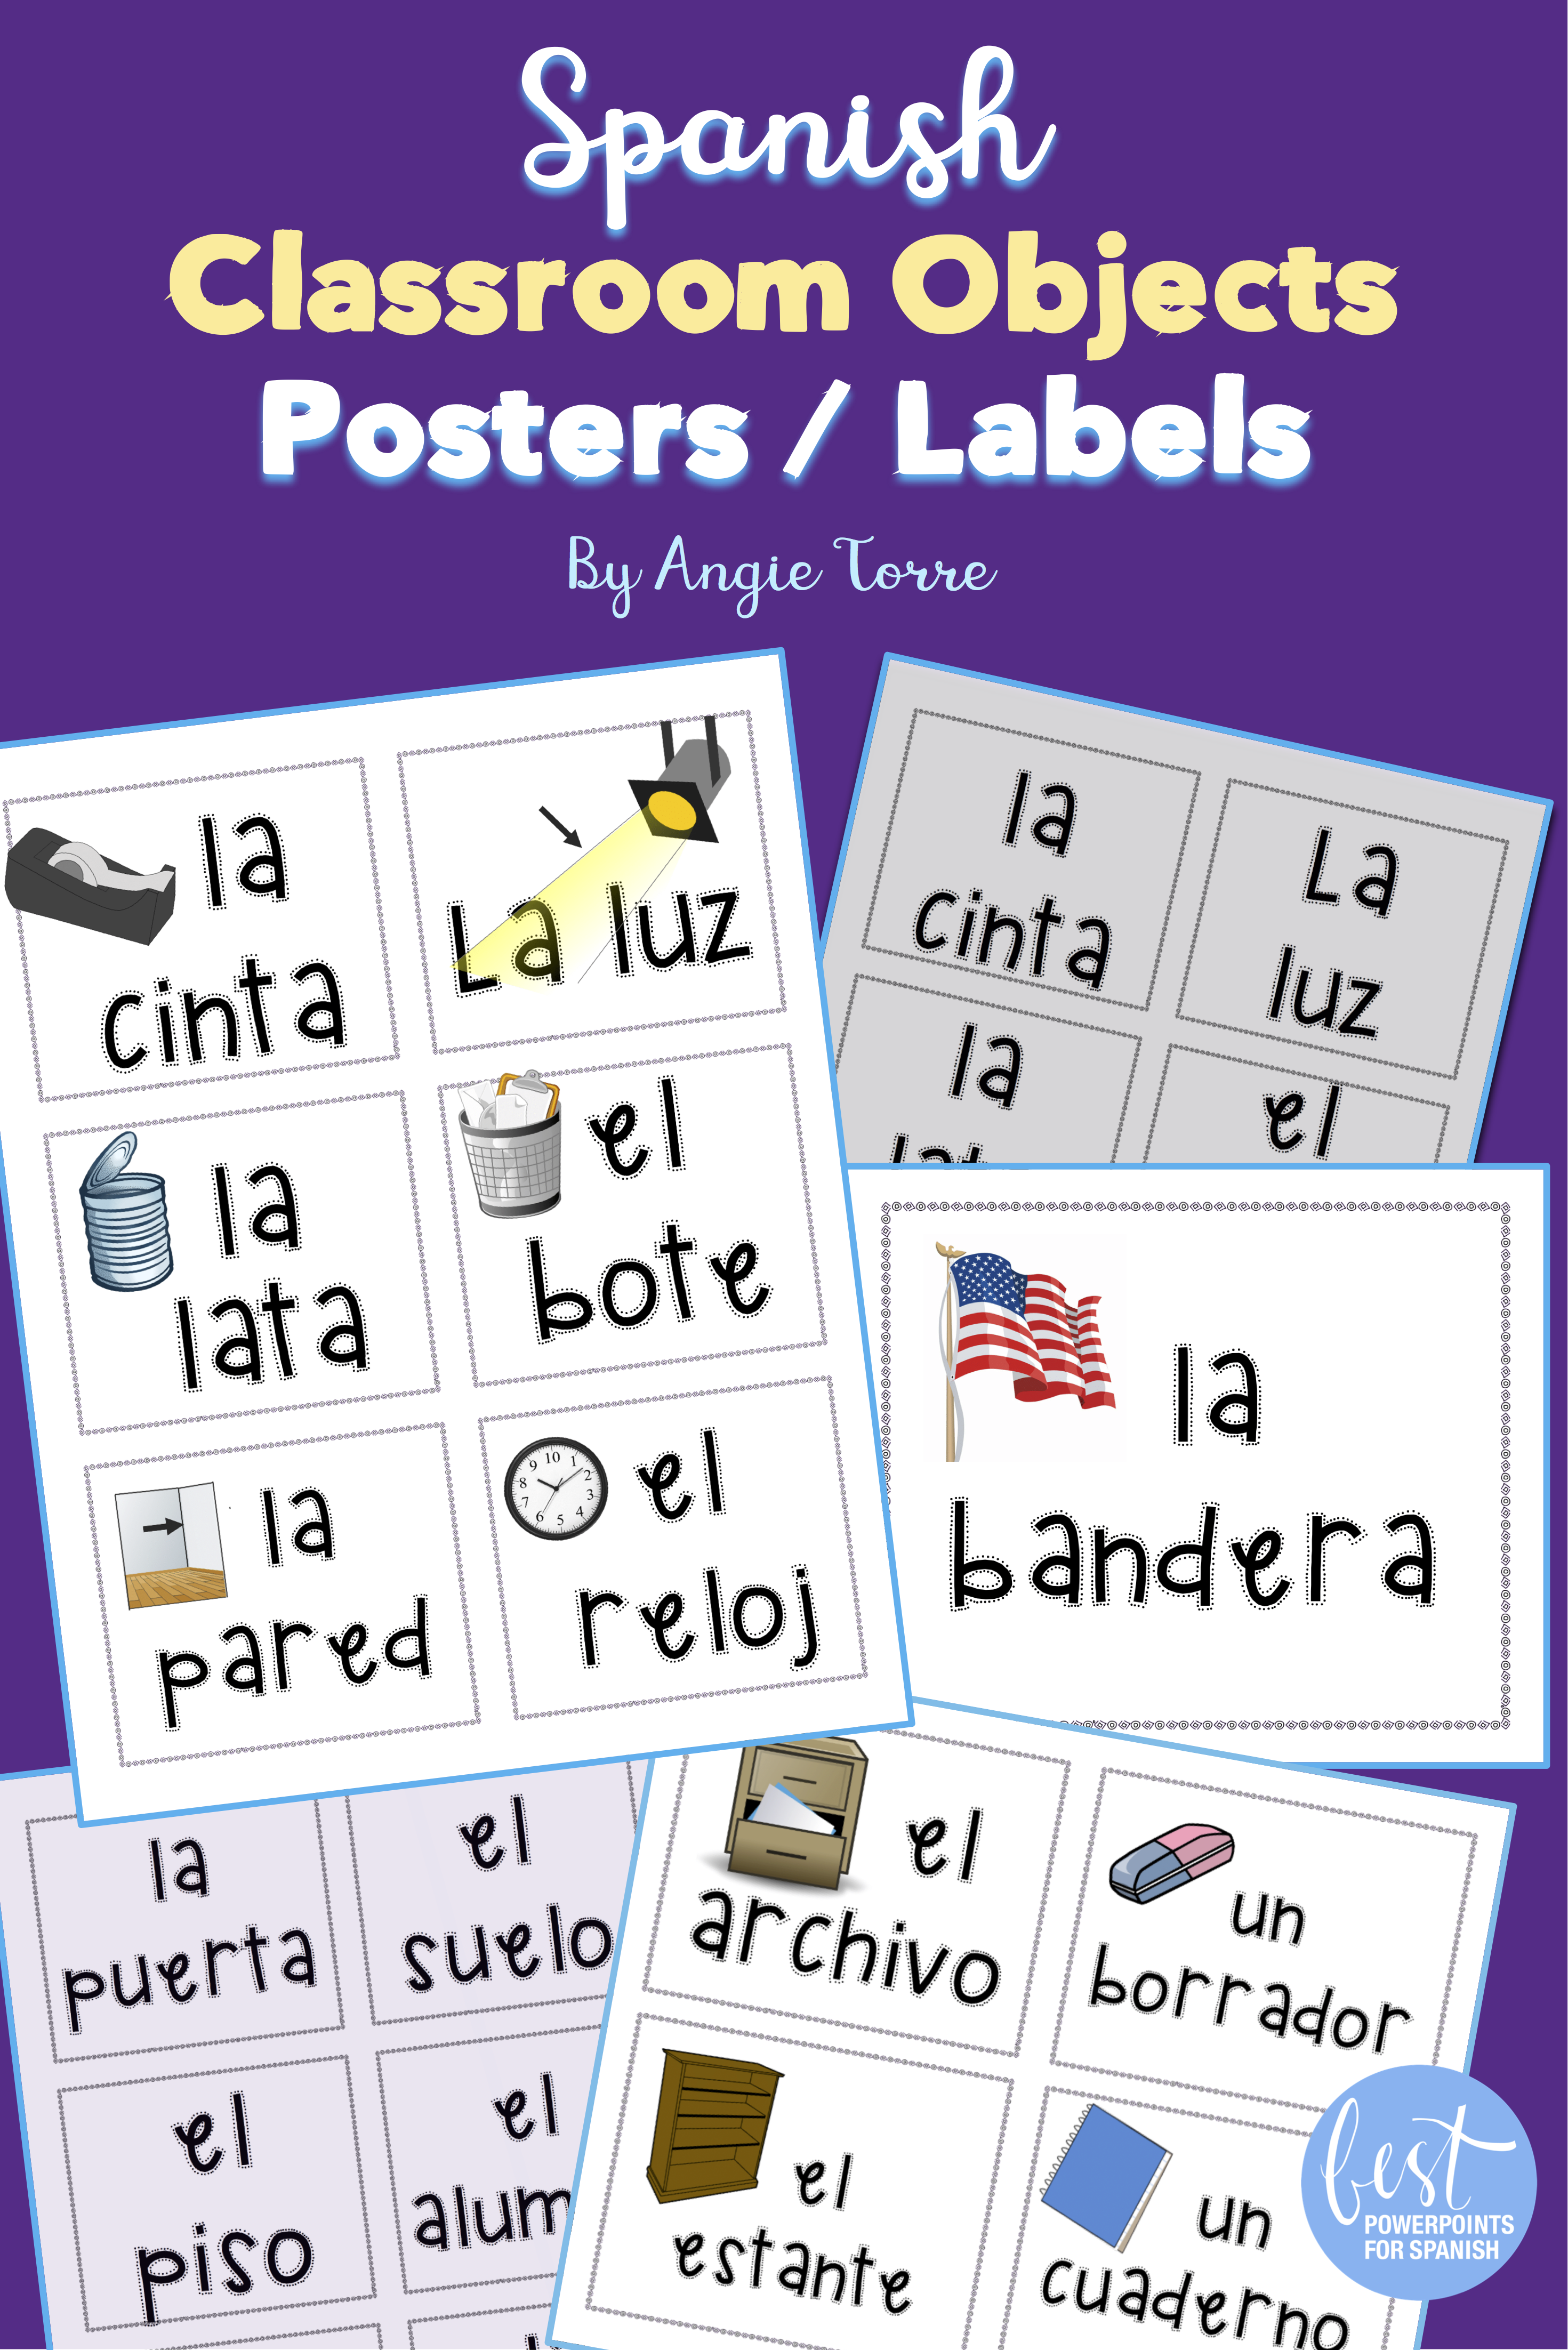 Spanish Classroom Objects Posters